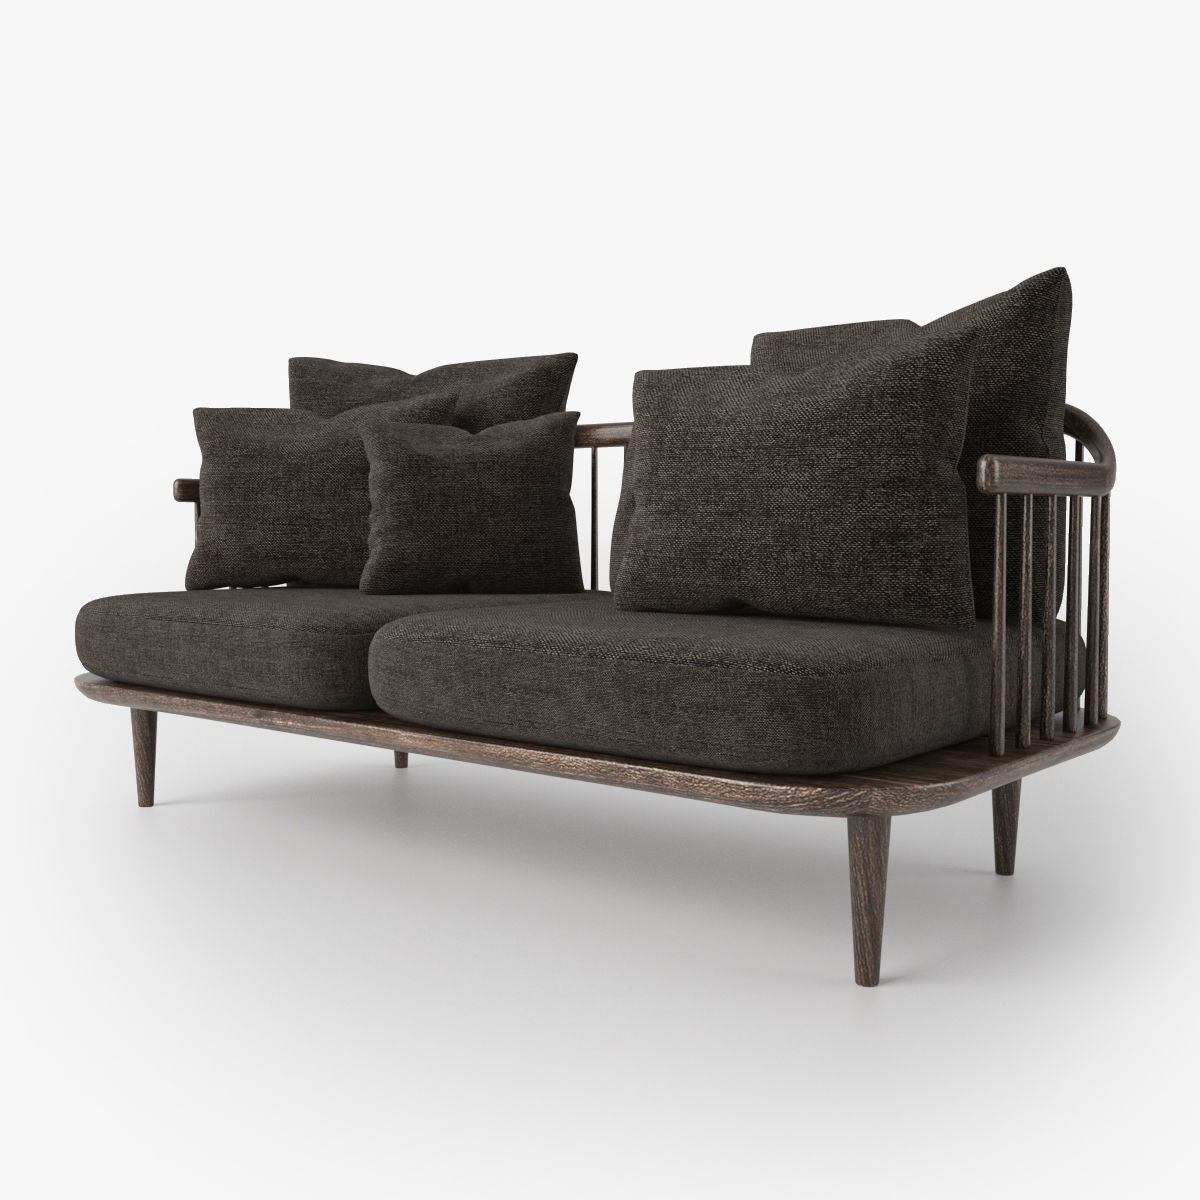 wooden sofa with fabric cushion free 3D model MAX